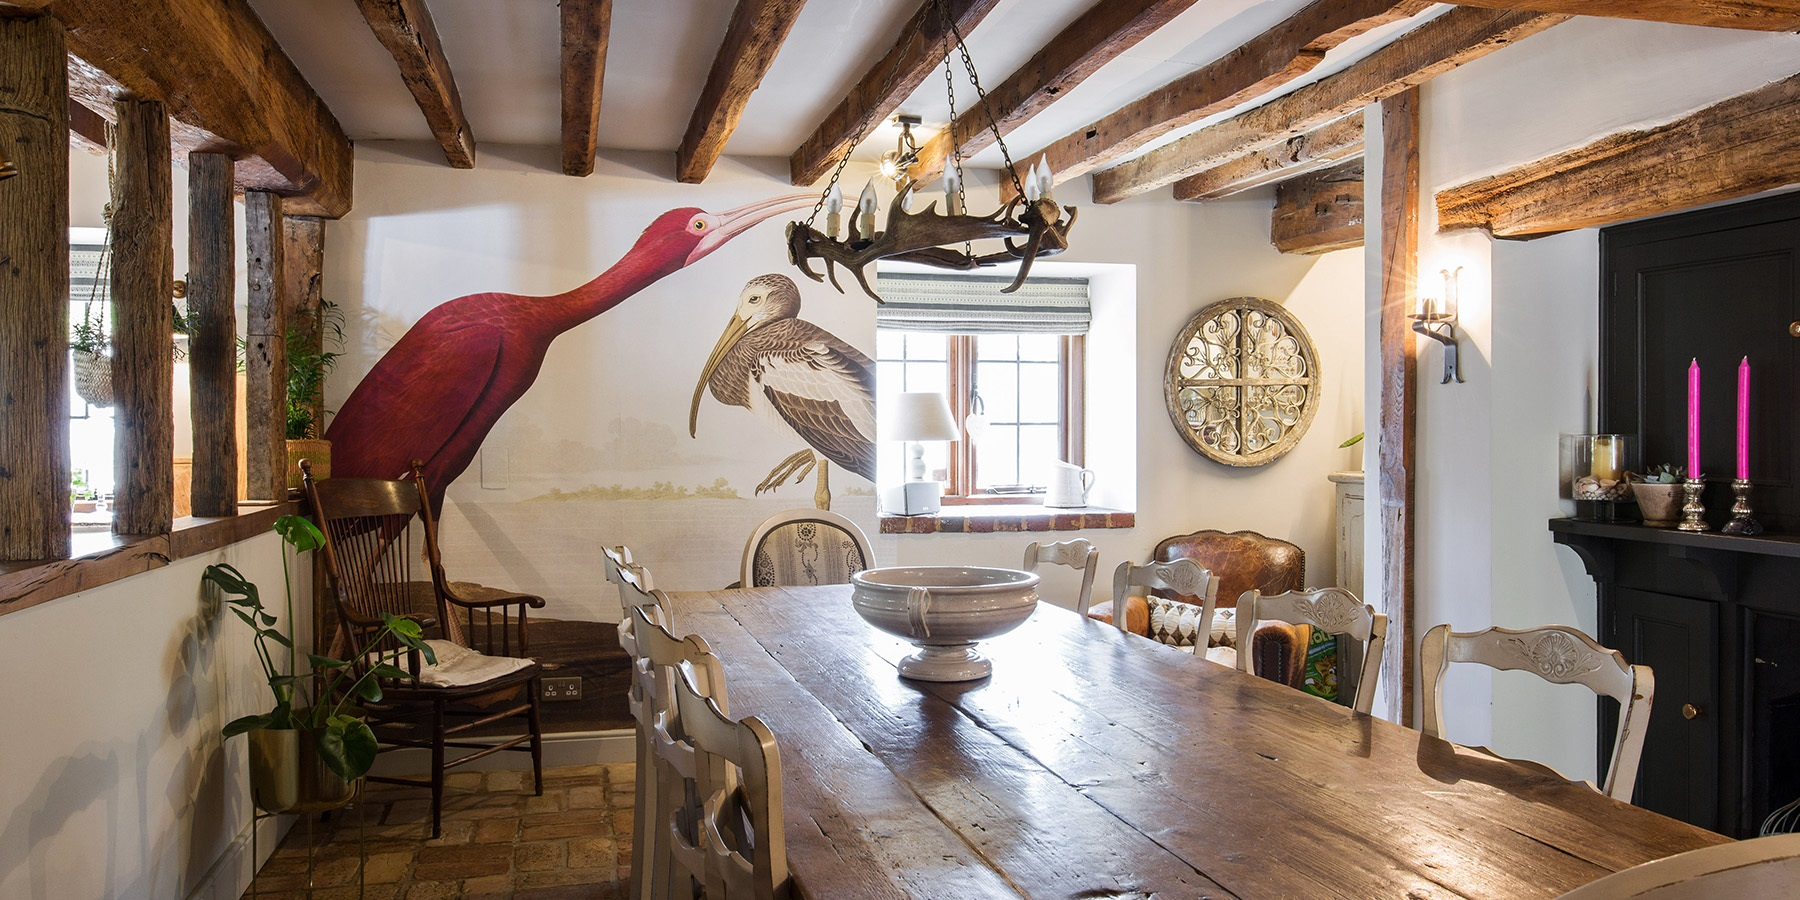 Rustic Oast House Kitchen & Dining Room - Beautiful authentic dining room with original wooden beams, open fire place and amazing bird wall mural.